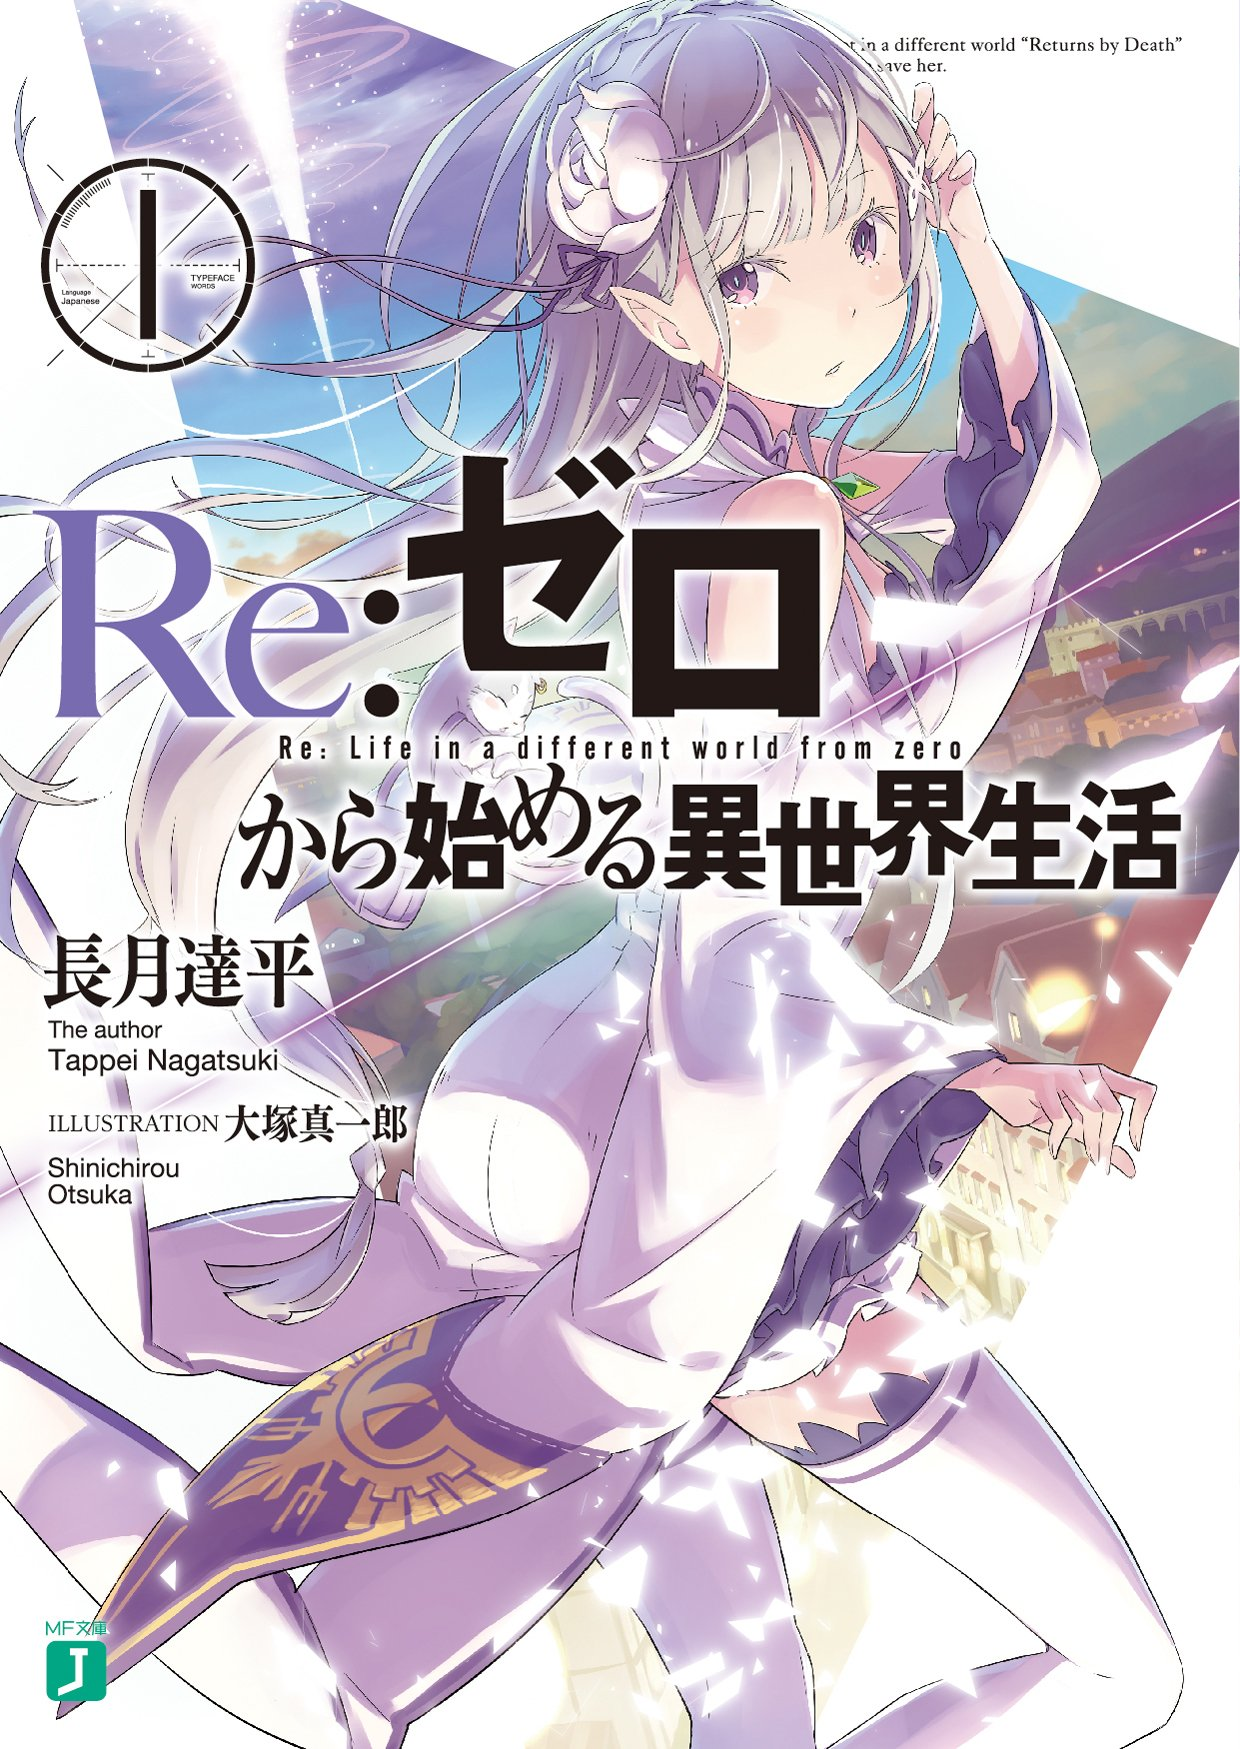 Light Novel Review: Re:Zero Volume 1